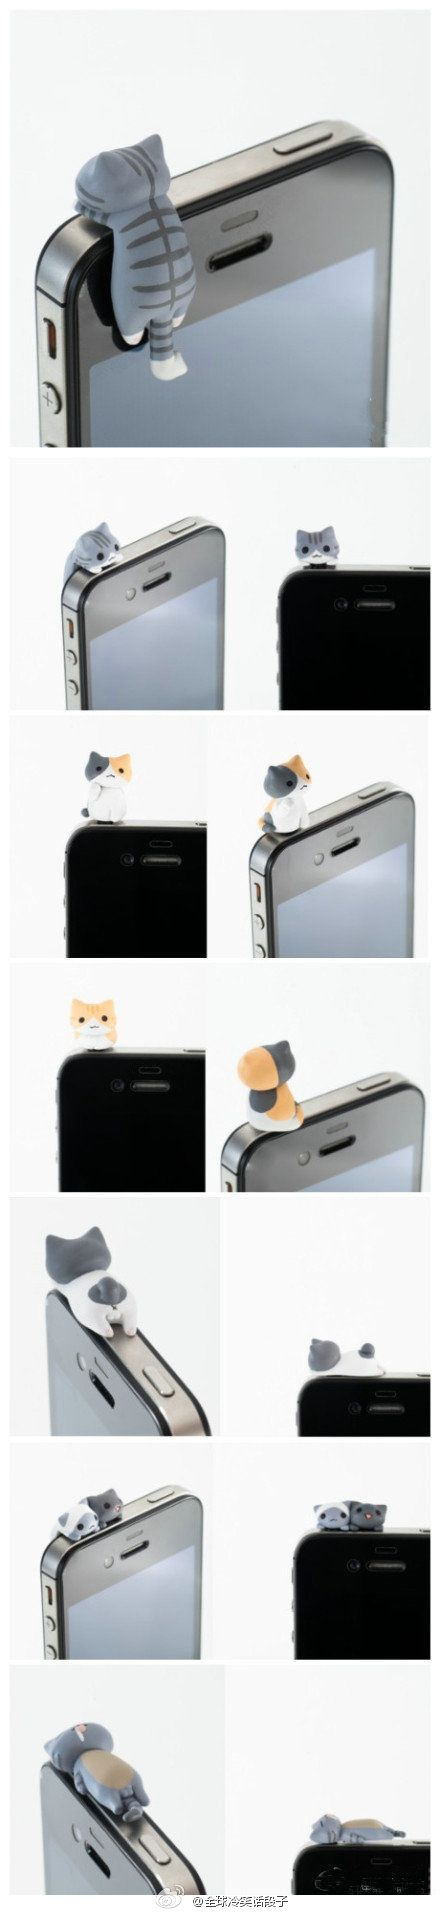 iCat for iPhone. ^.^